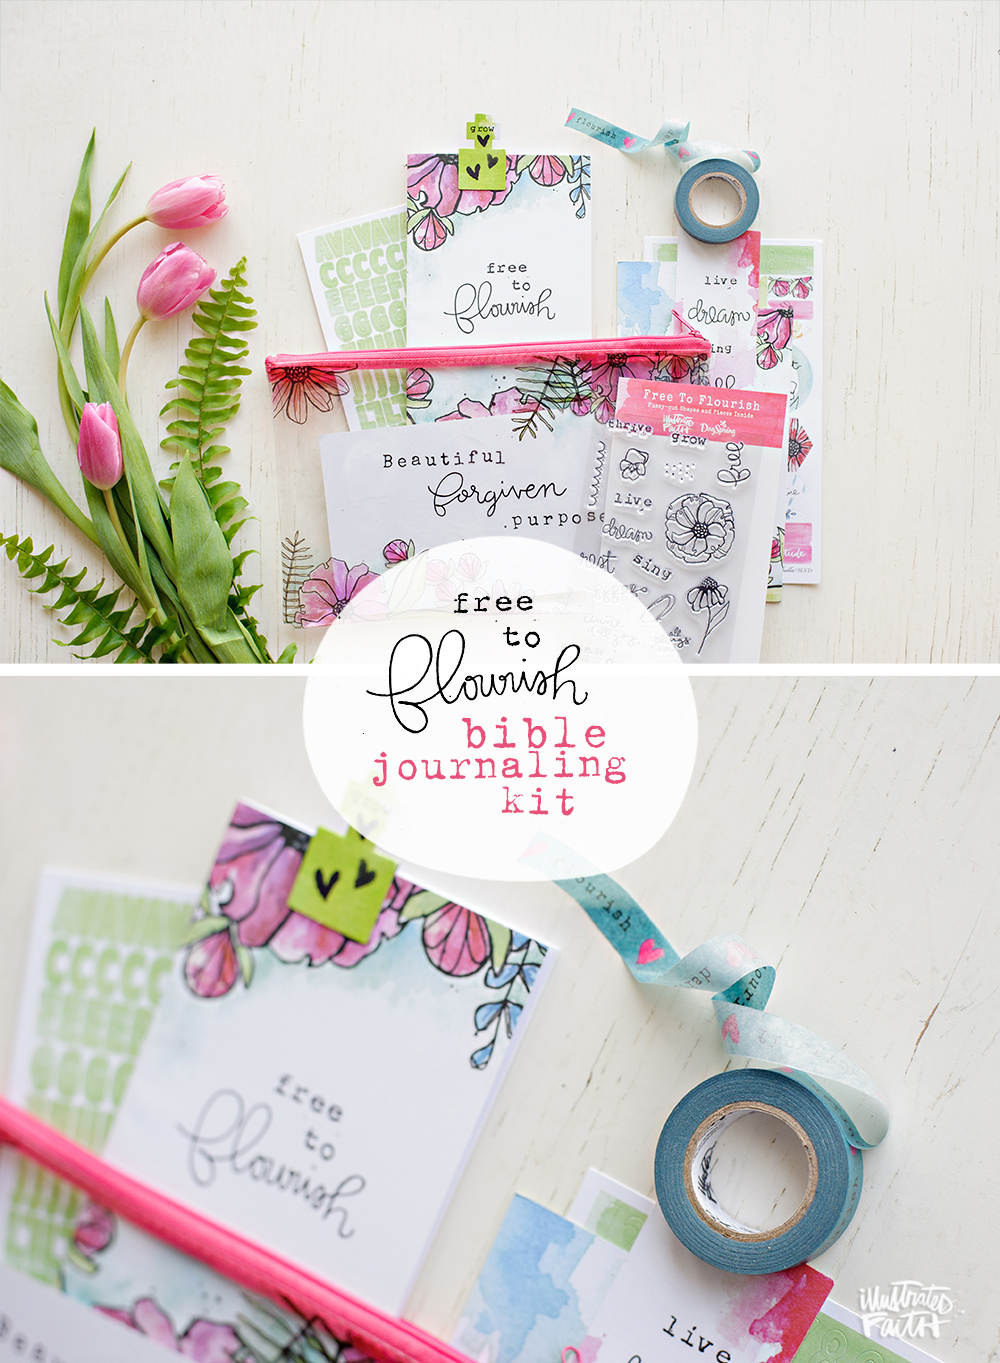 Illustrated Faith and Dayspring Free to Flourish Bible journaling devotional kit written by Bekah Blankenship and mixed media process video by Shanna Noel